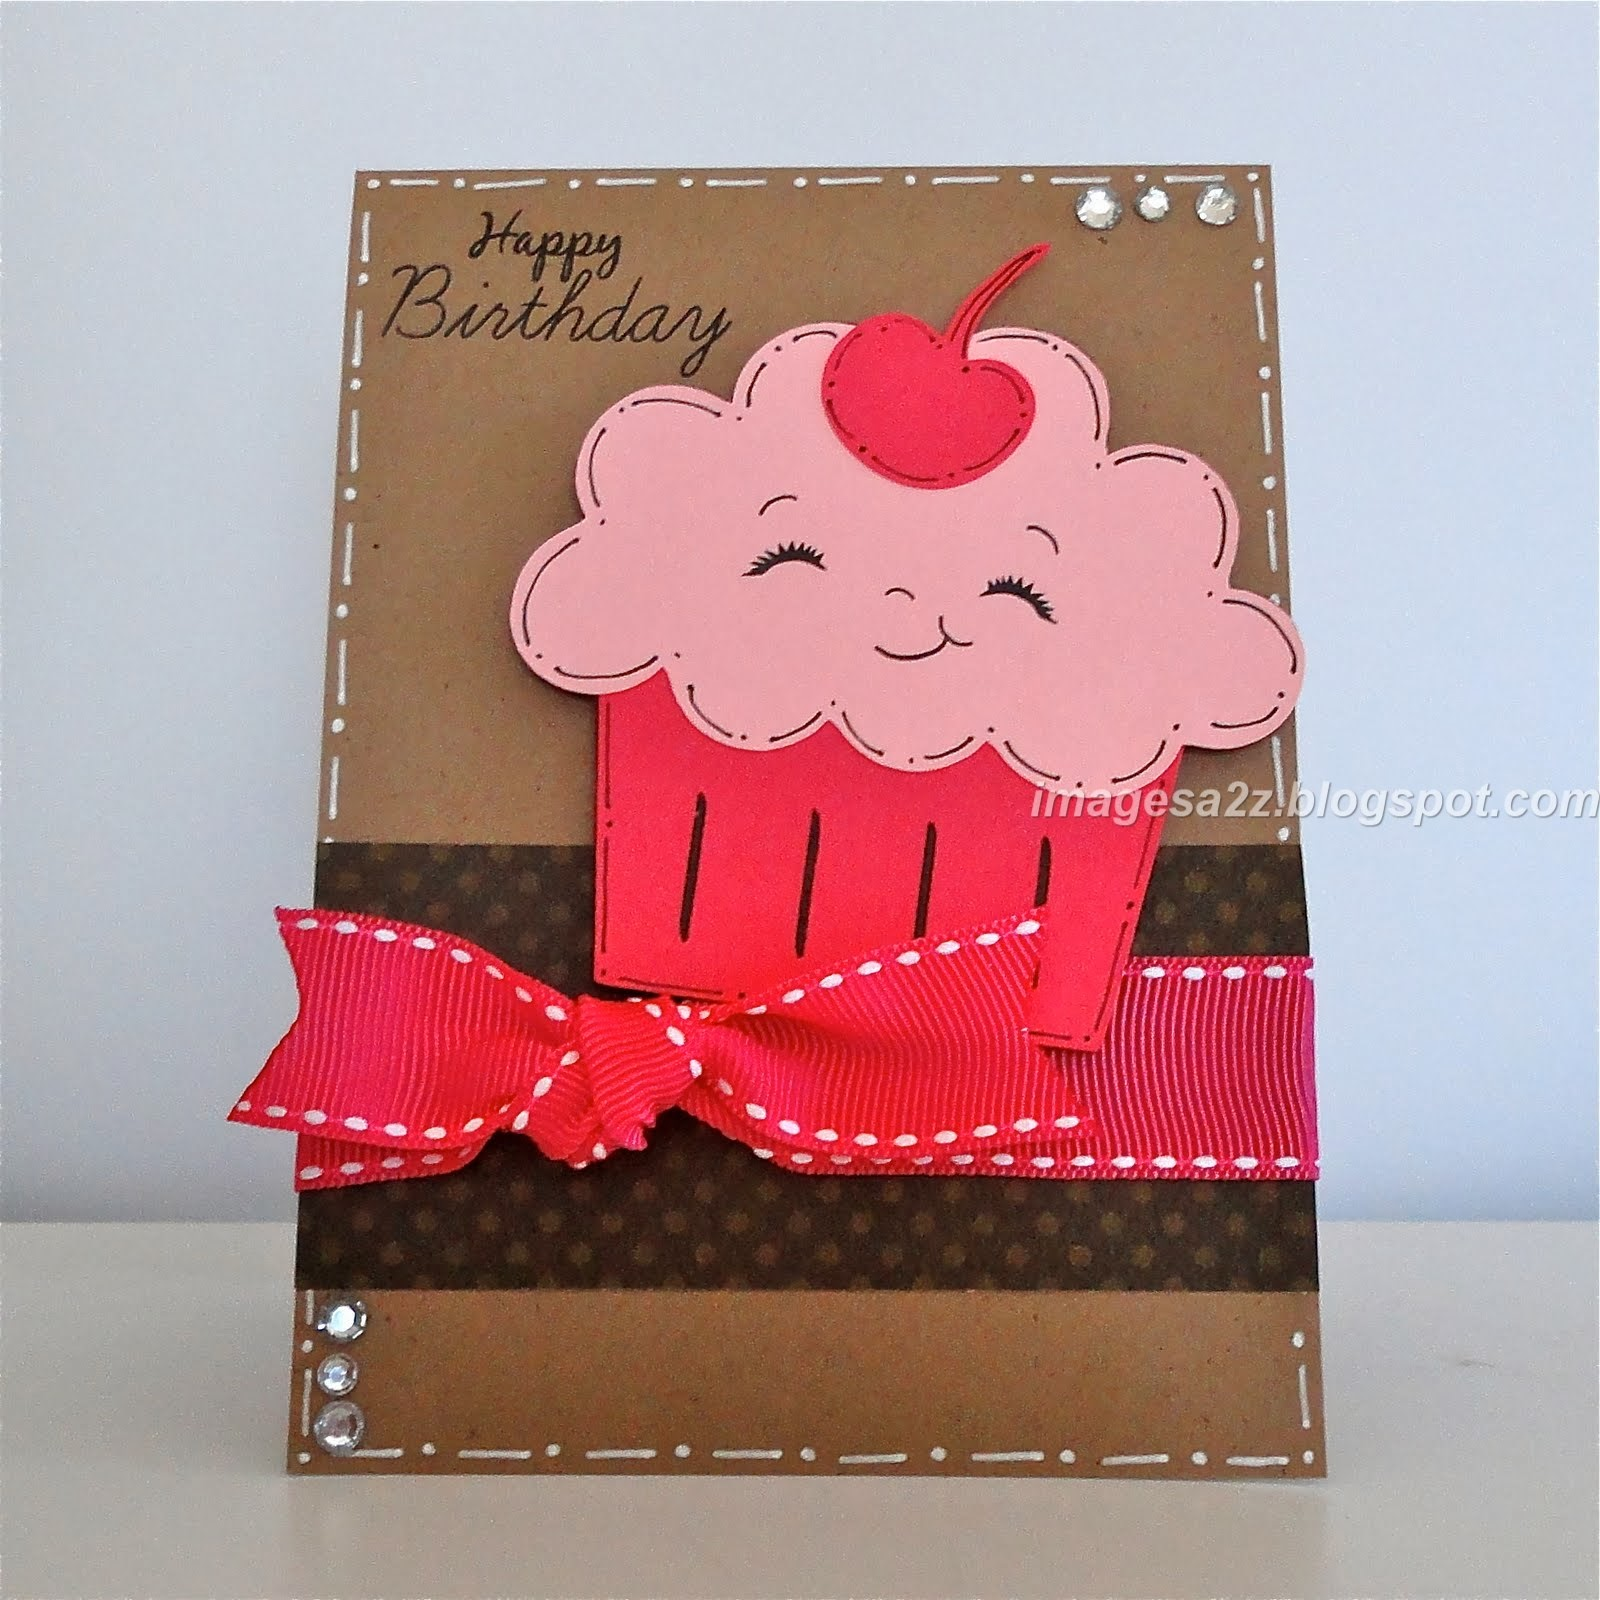 Birthday card making ideas for husband